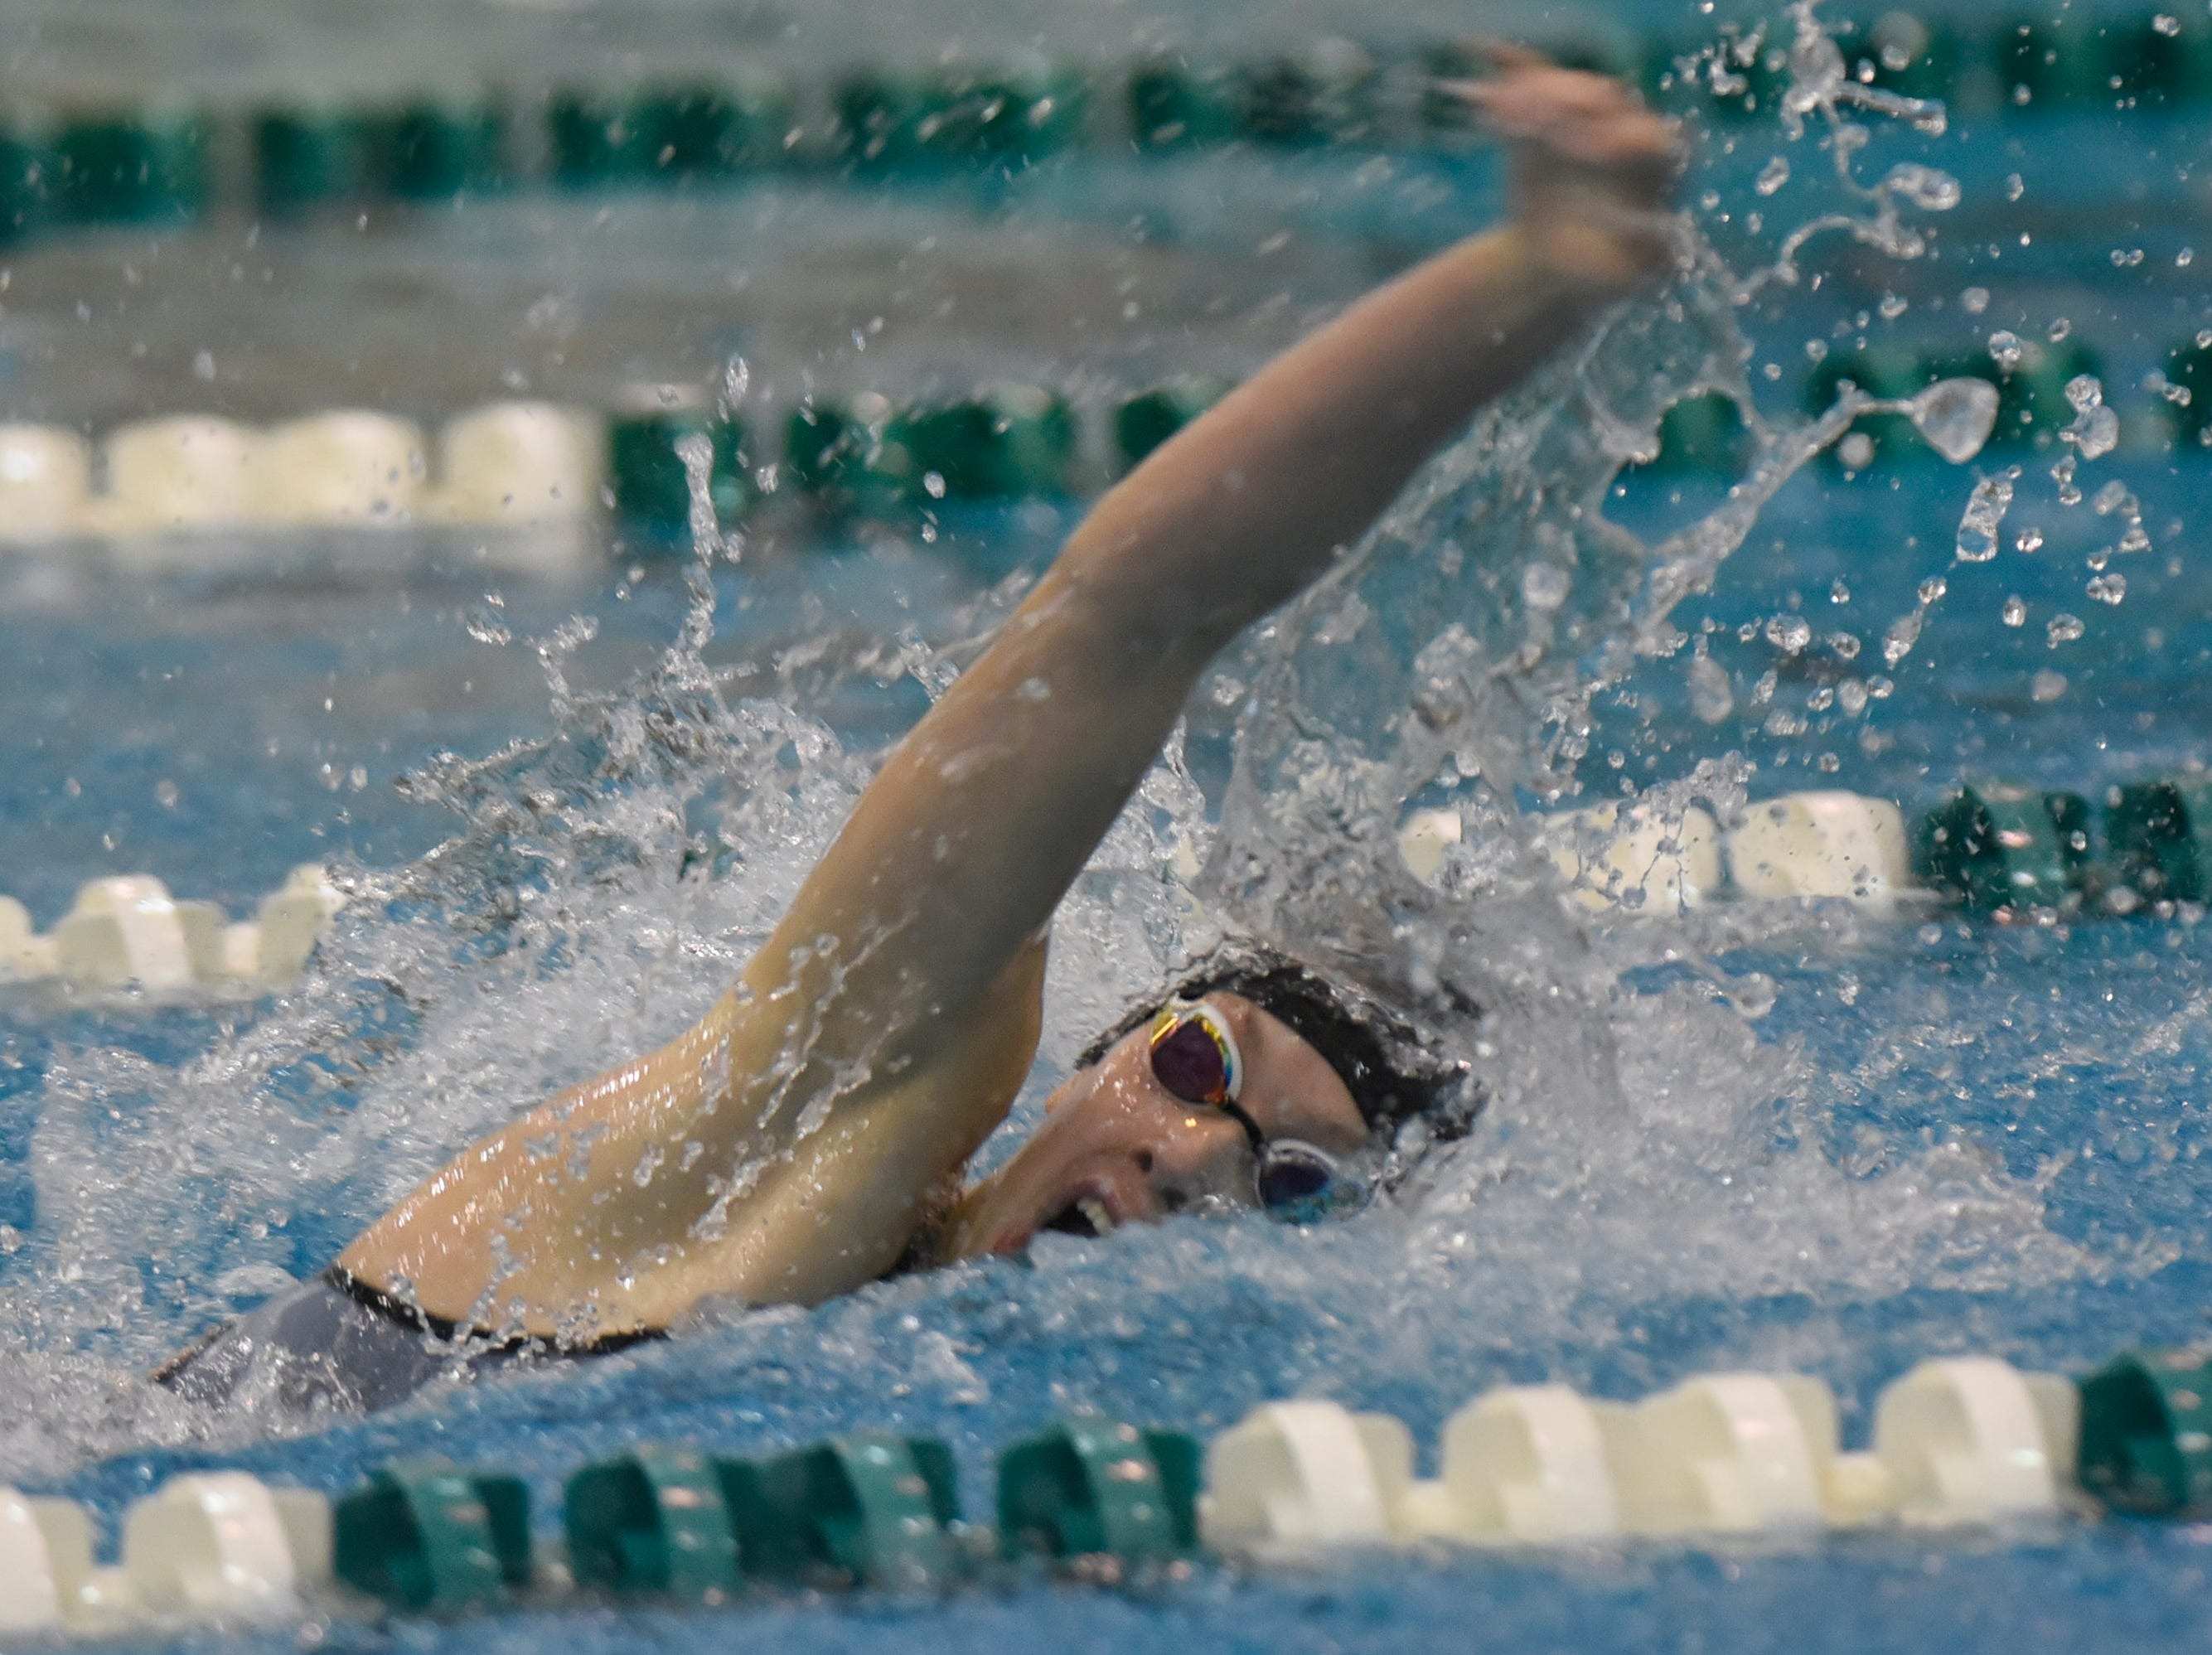 Harrison/Farmington's Ashley Turak in the 100 yard freestyle at the Division 1 girls swimming and diving championships held at Eastern Michigan University Nov. 17, 2018.